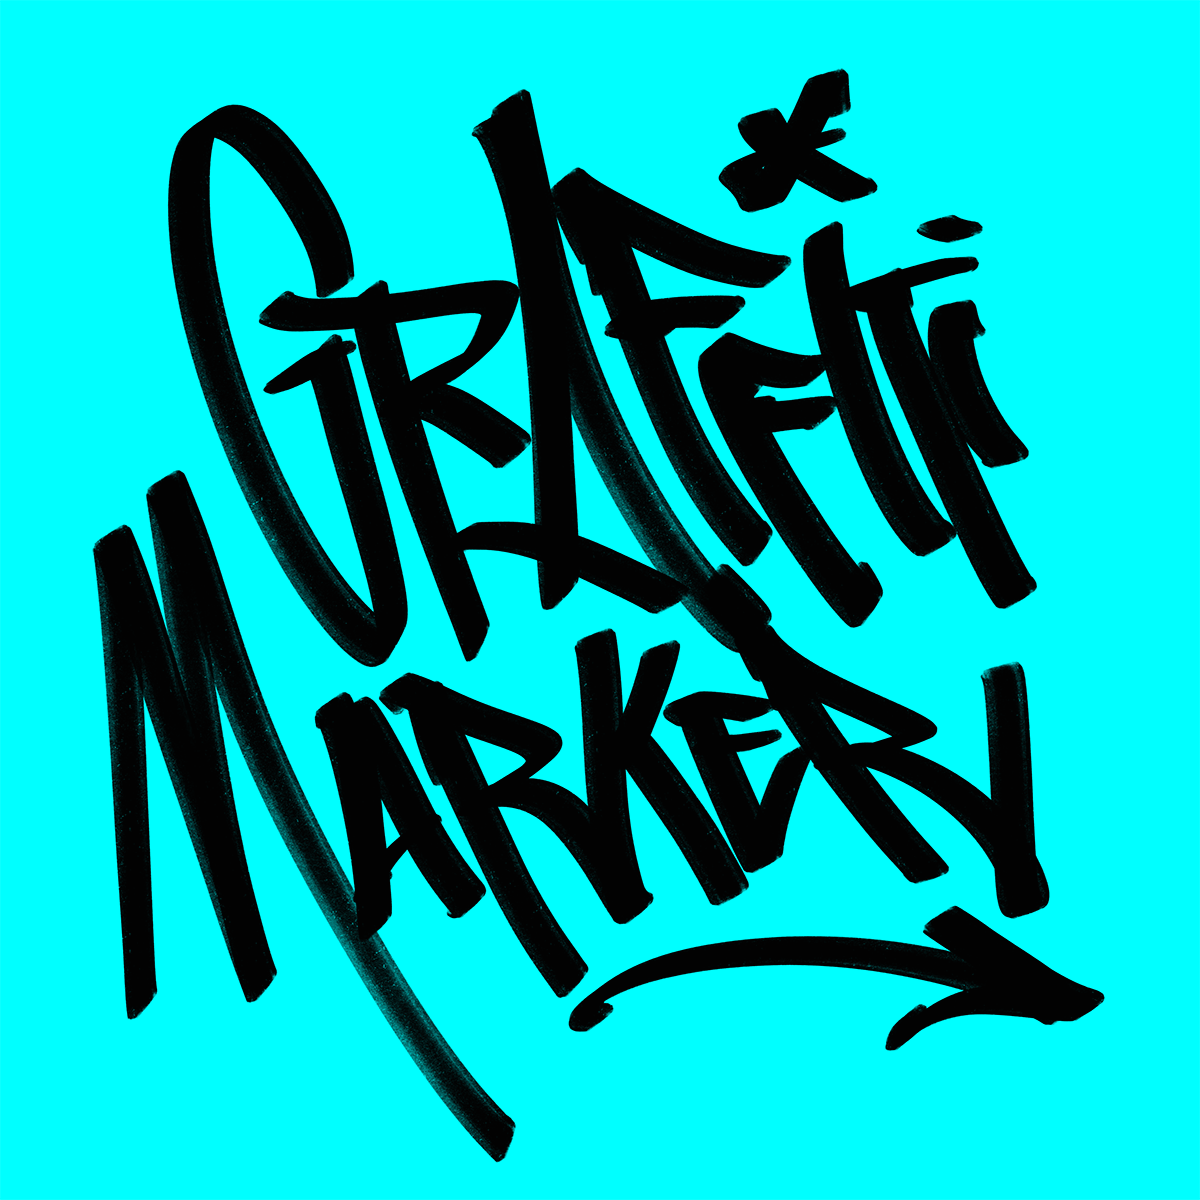 Graffiti Marker Procreate Brush by Typeverything.com